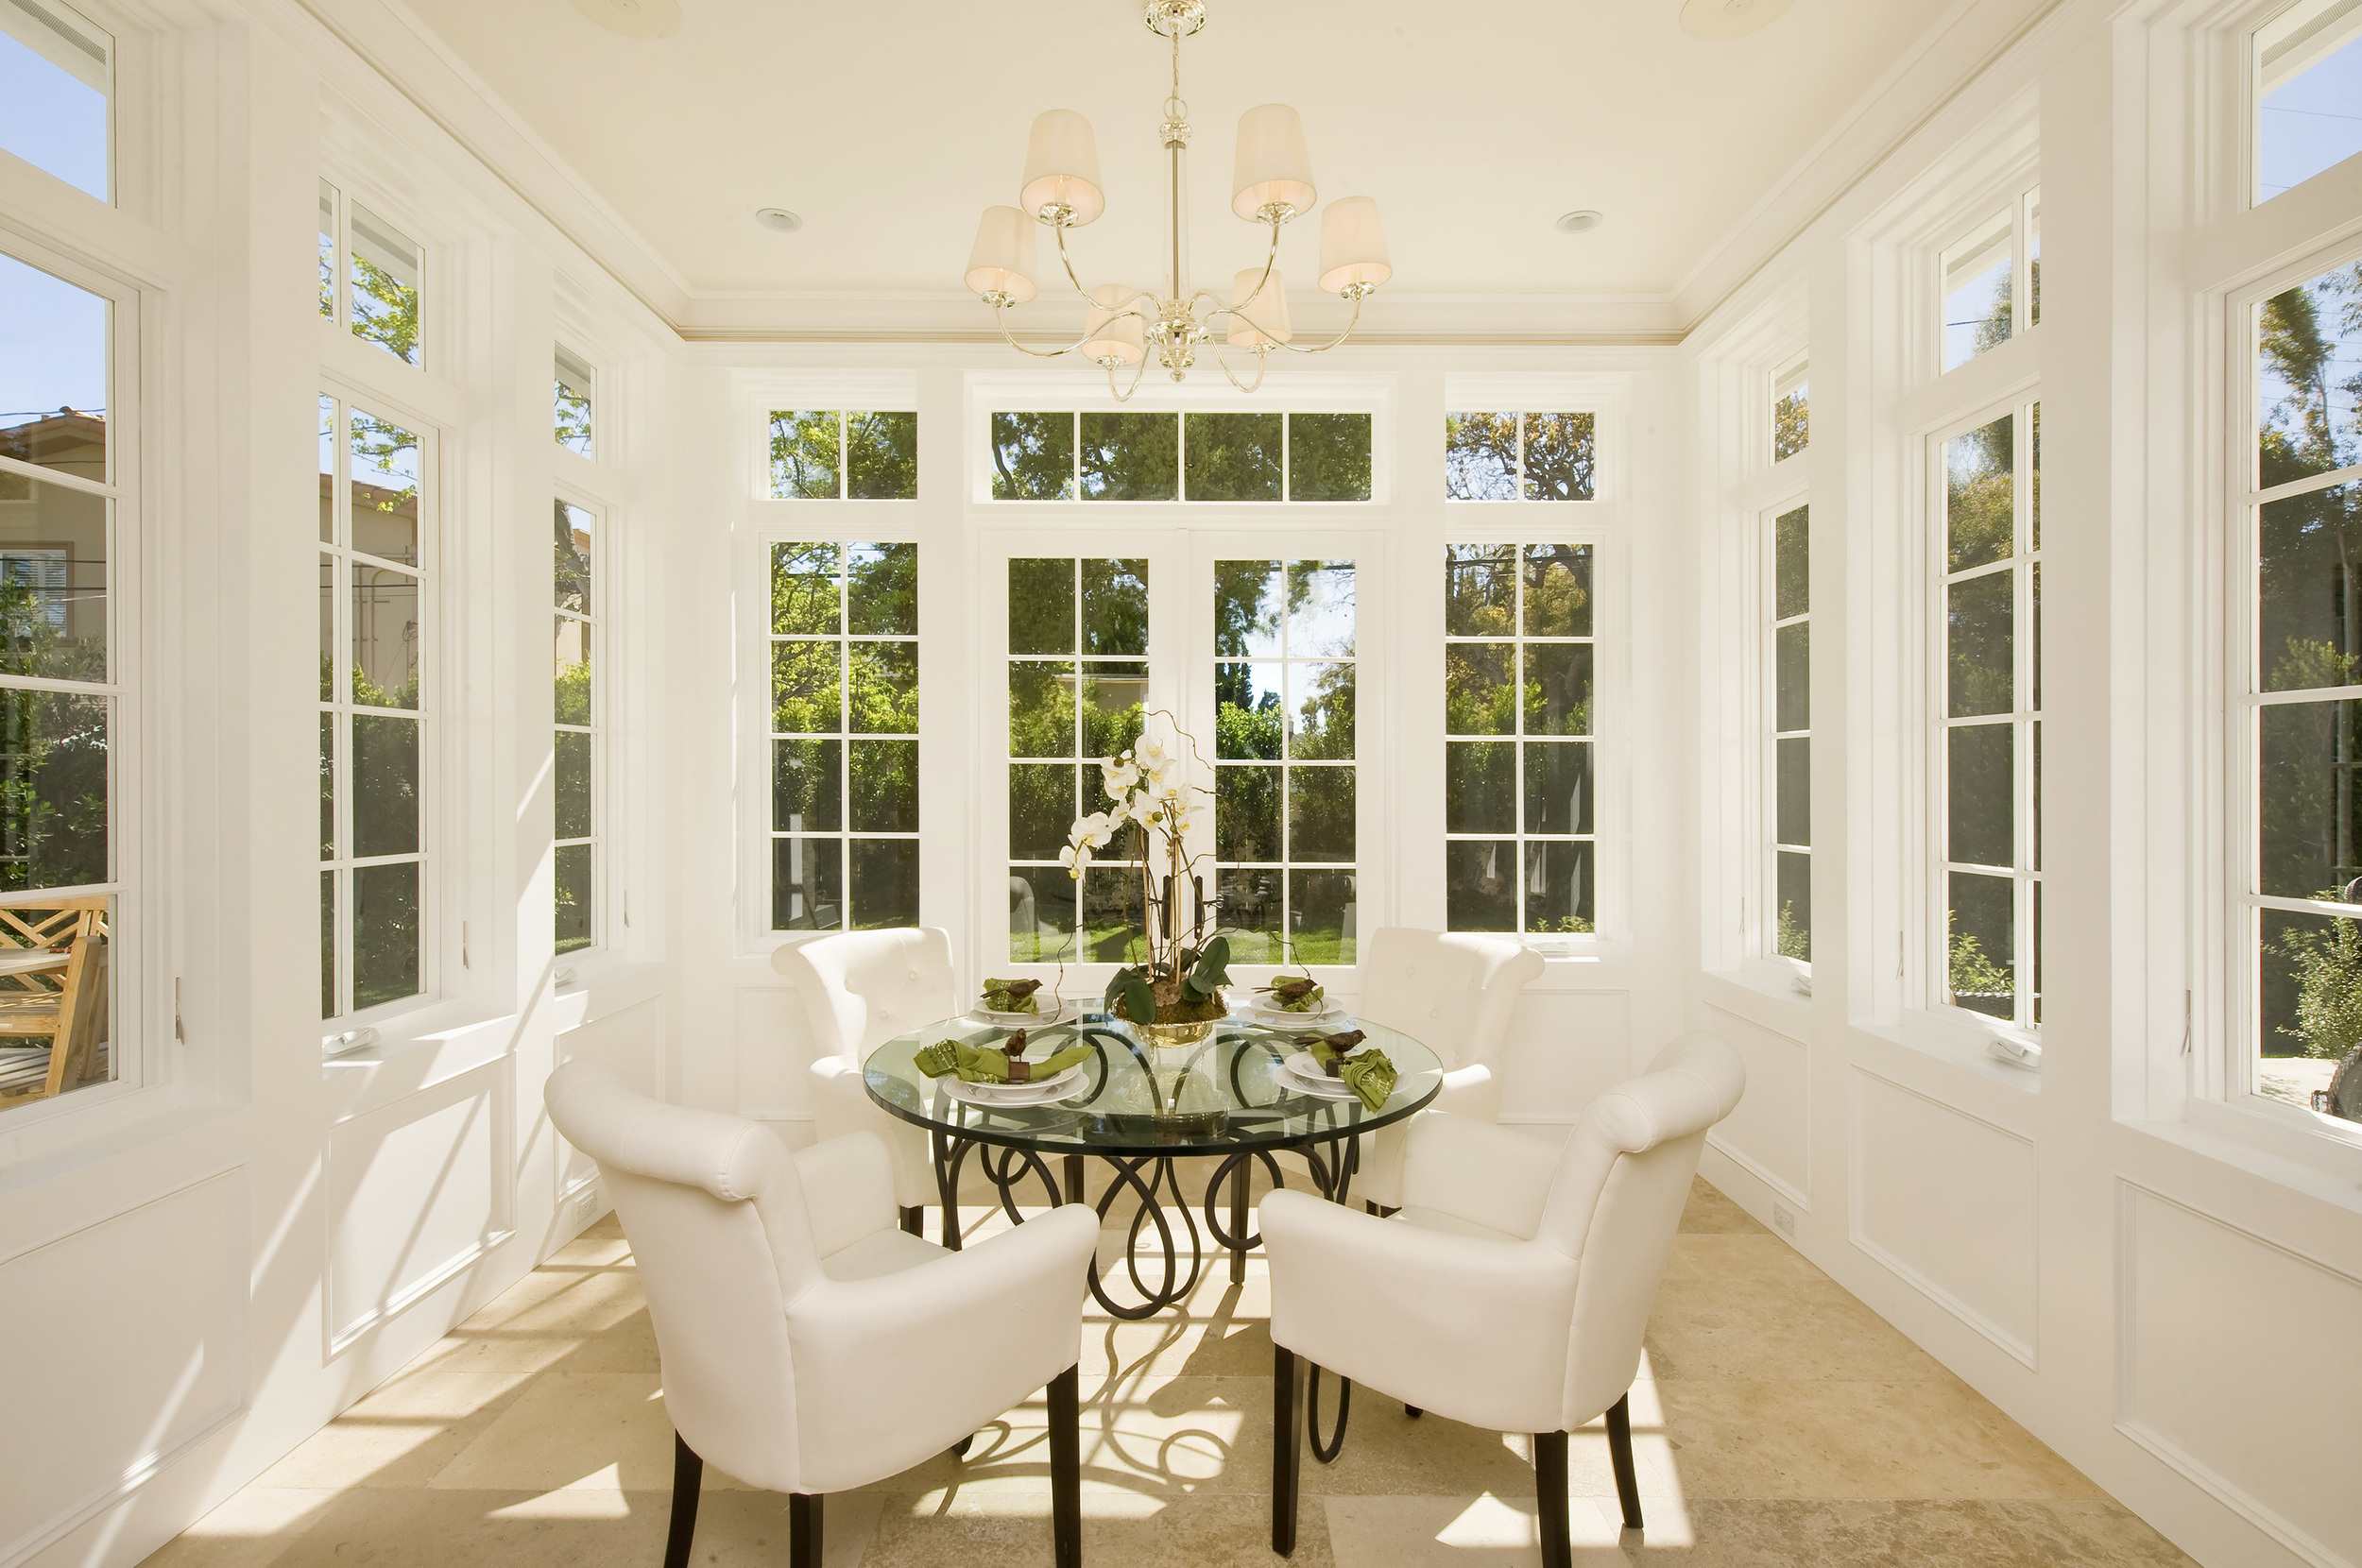 Empire Group. Breakfast room in an all glass conservatory. I used this concept in London many times to great effect.